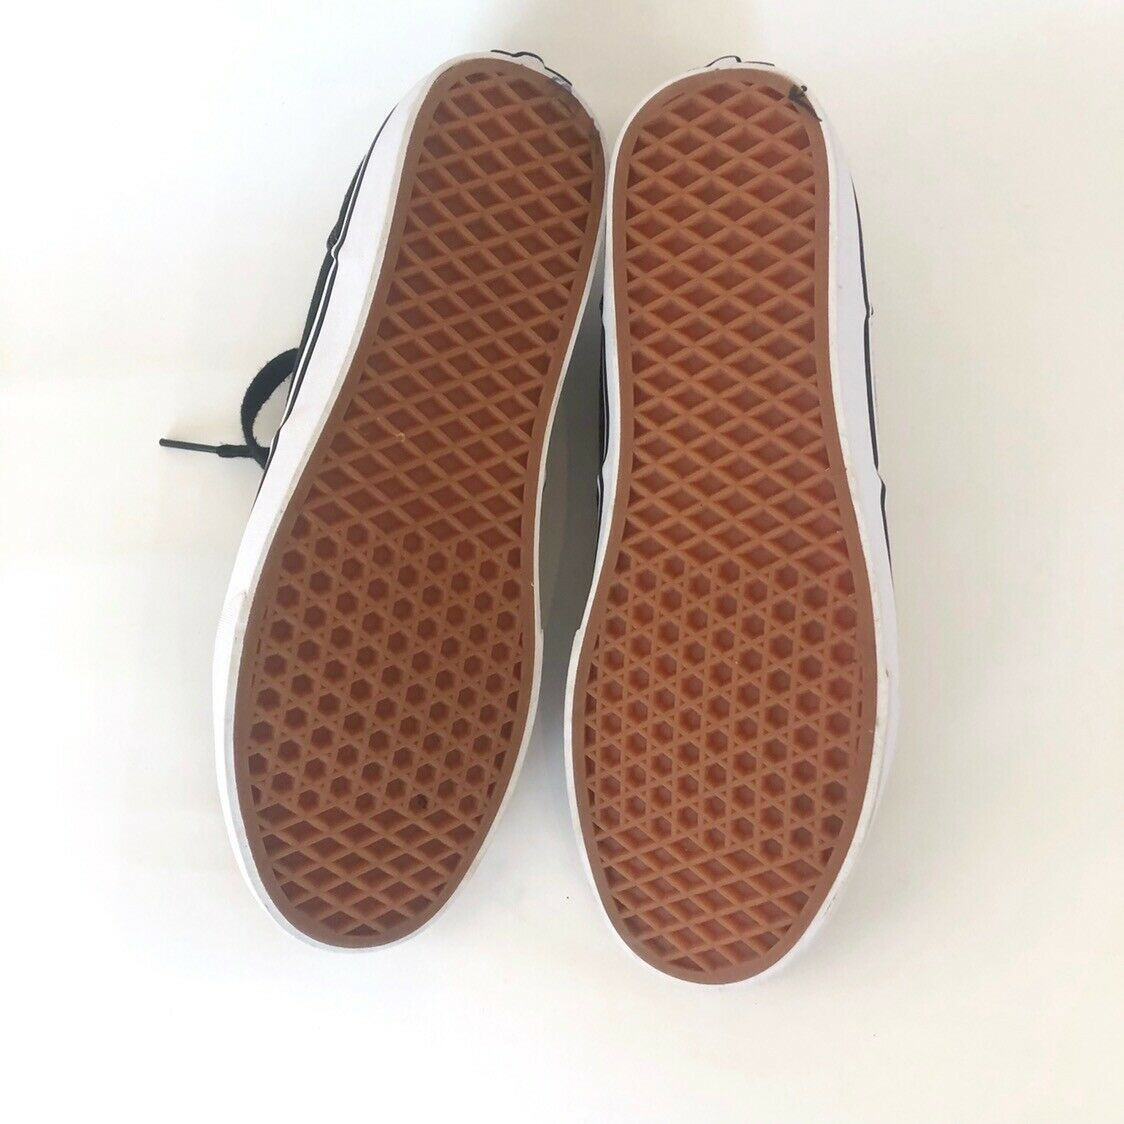 VANS Off The Wall Skate Shoe Athletic Mens Shoes Size 11 / 107